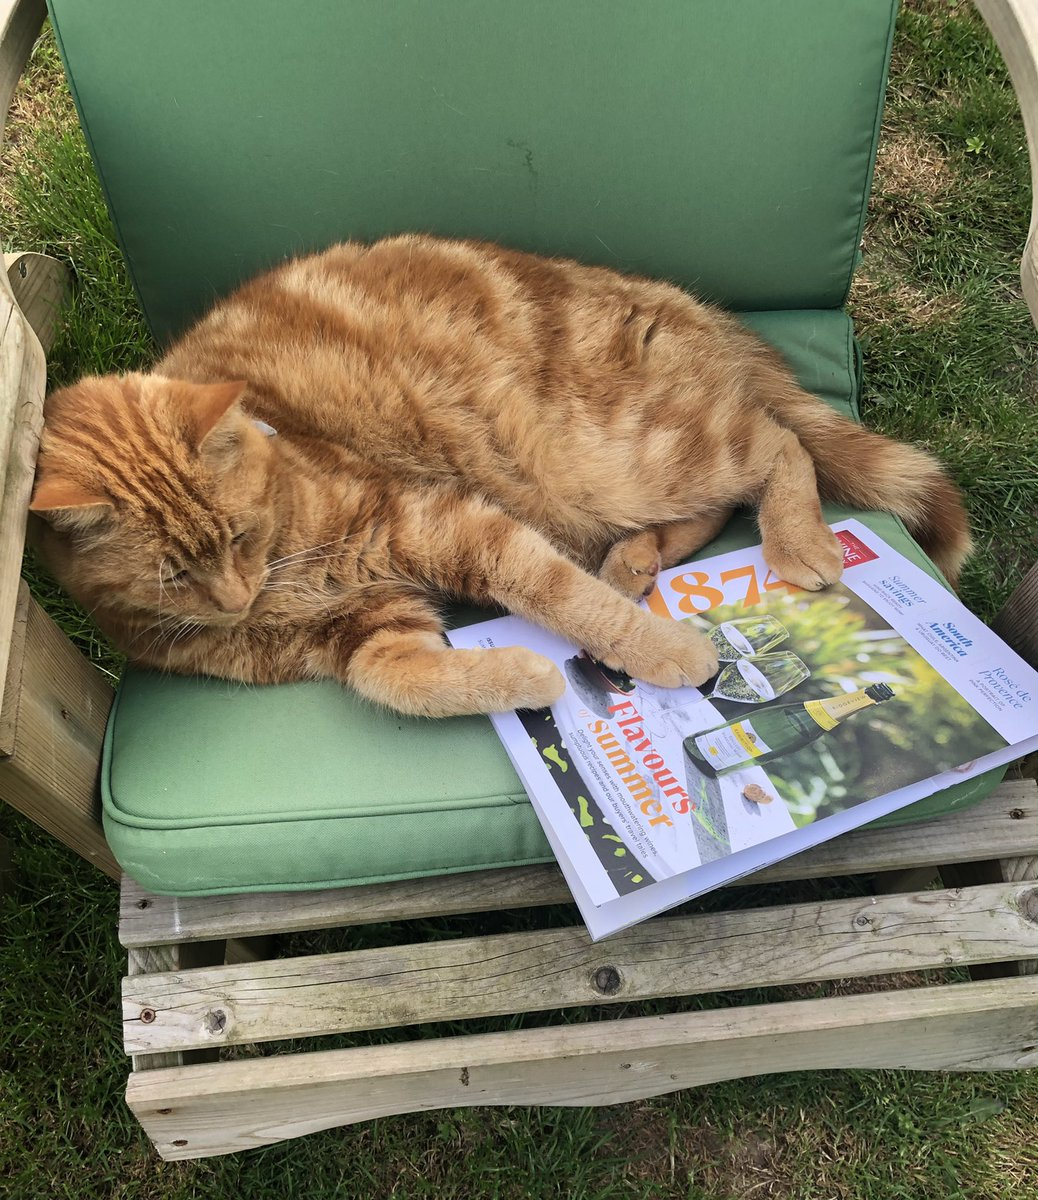 Looks like everyone wants to get their paws on our 1874 magazine! 🐾